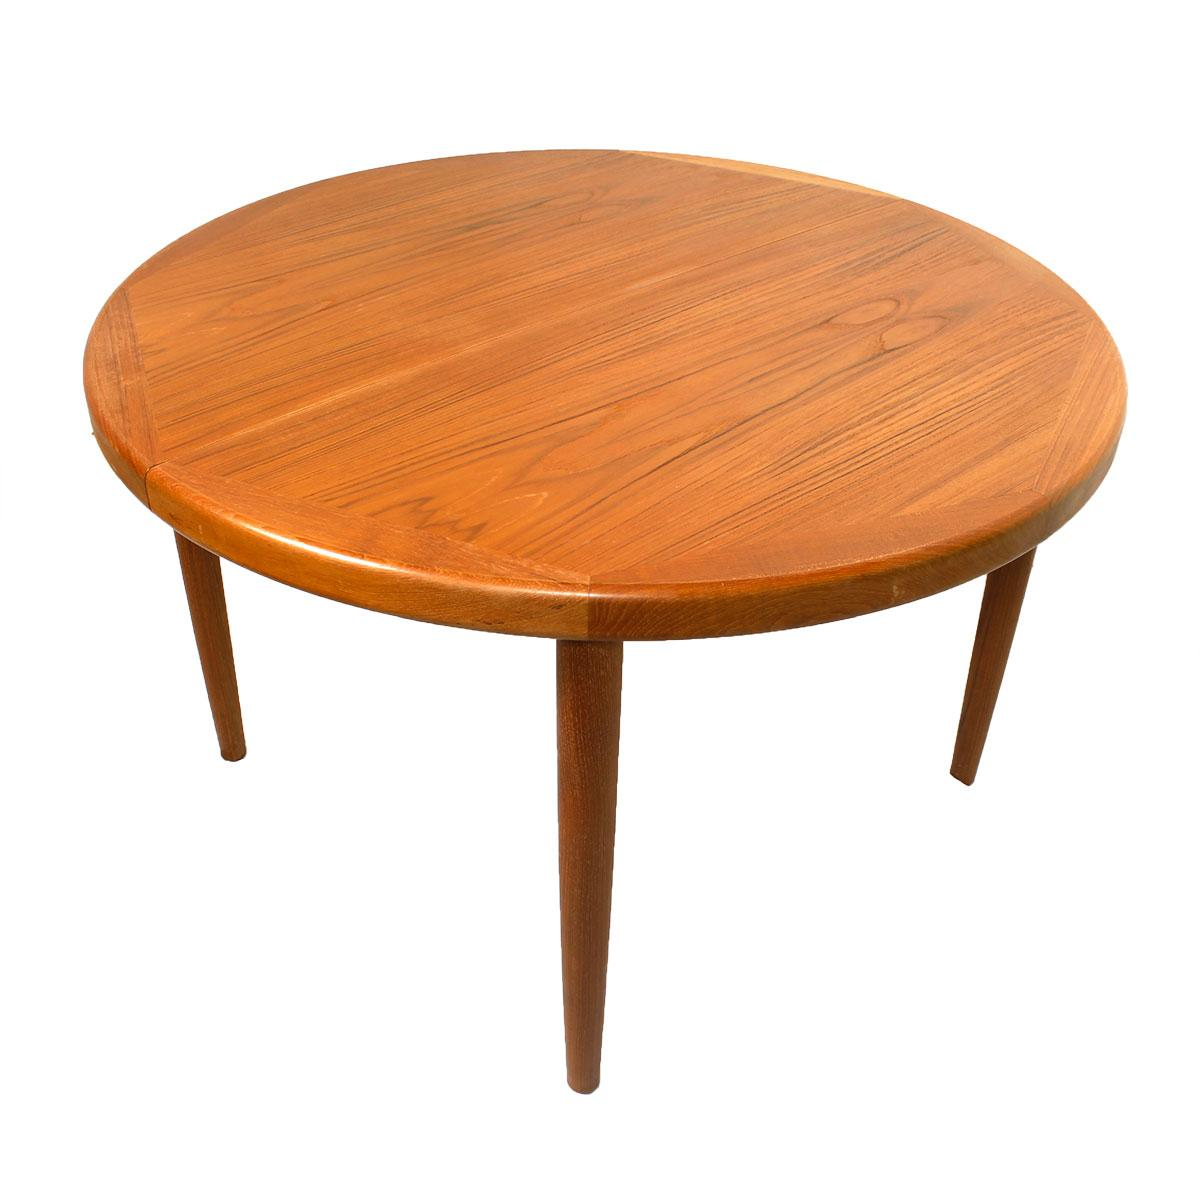 Danish Teak RoundOval Dining Table amp Pads Chairish : 18588461 0aad 4a31 b533 474188fc5b01aspectfitampwidth640ampheight640 from www.chairish.com size 640 x 640 jpeg 32kB